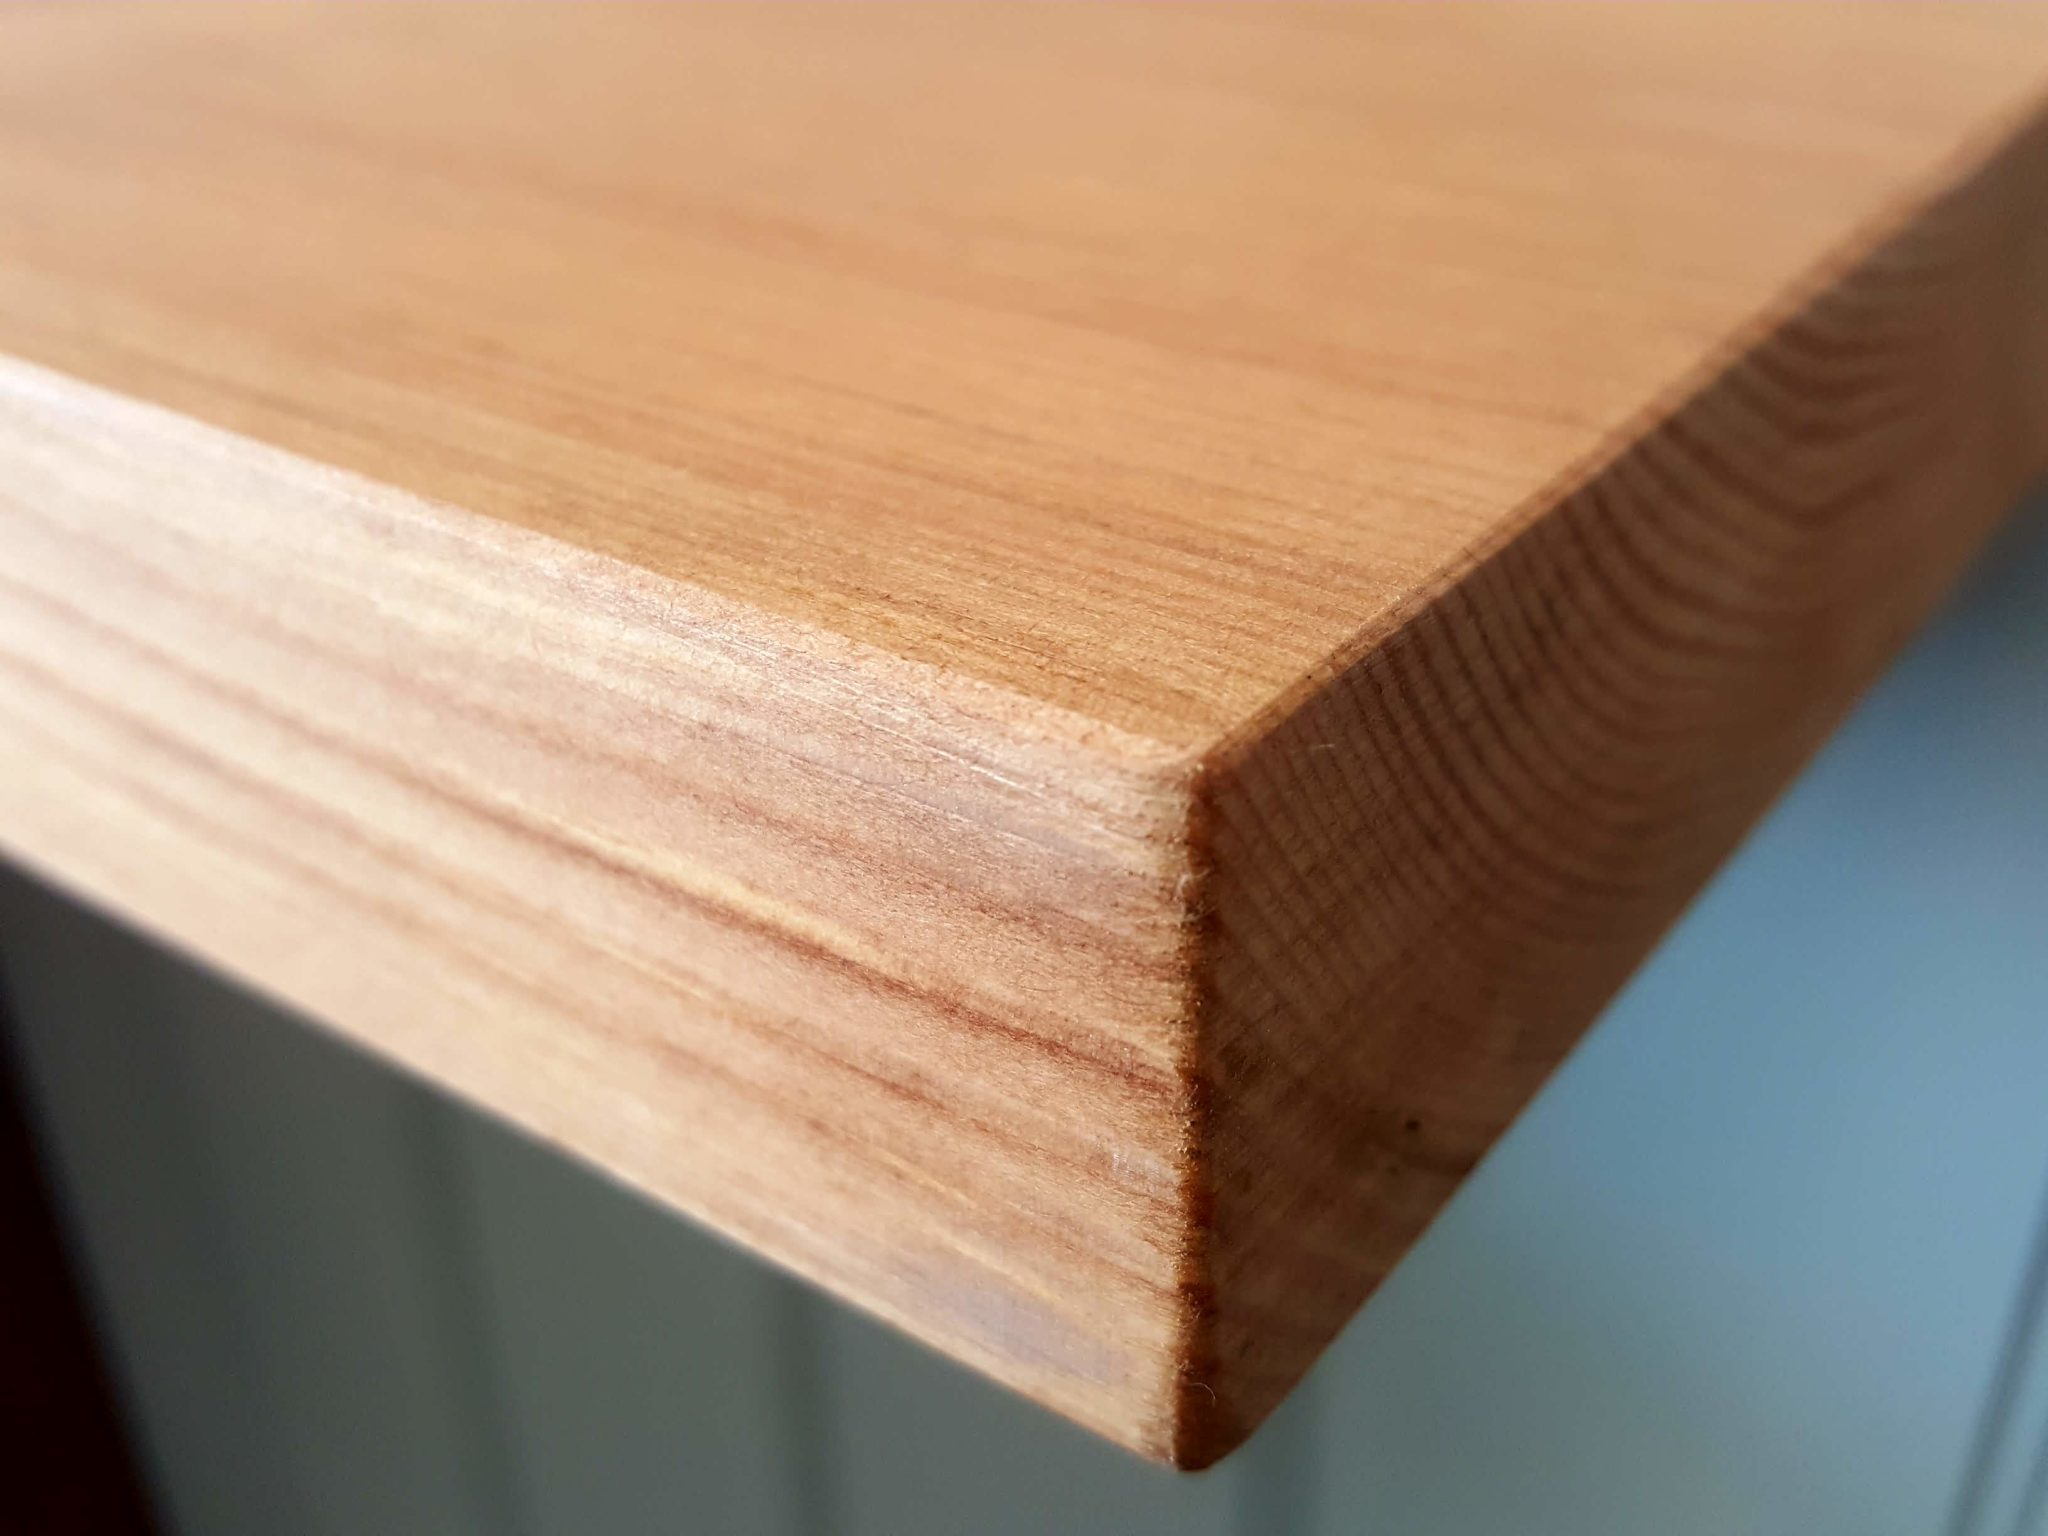 Image showing close up of 25mm square oak top available from Edmunds & Clarke Furniture Bury St Edmunds.